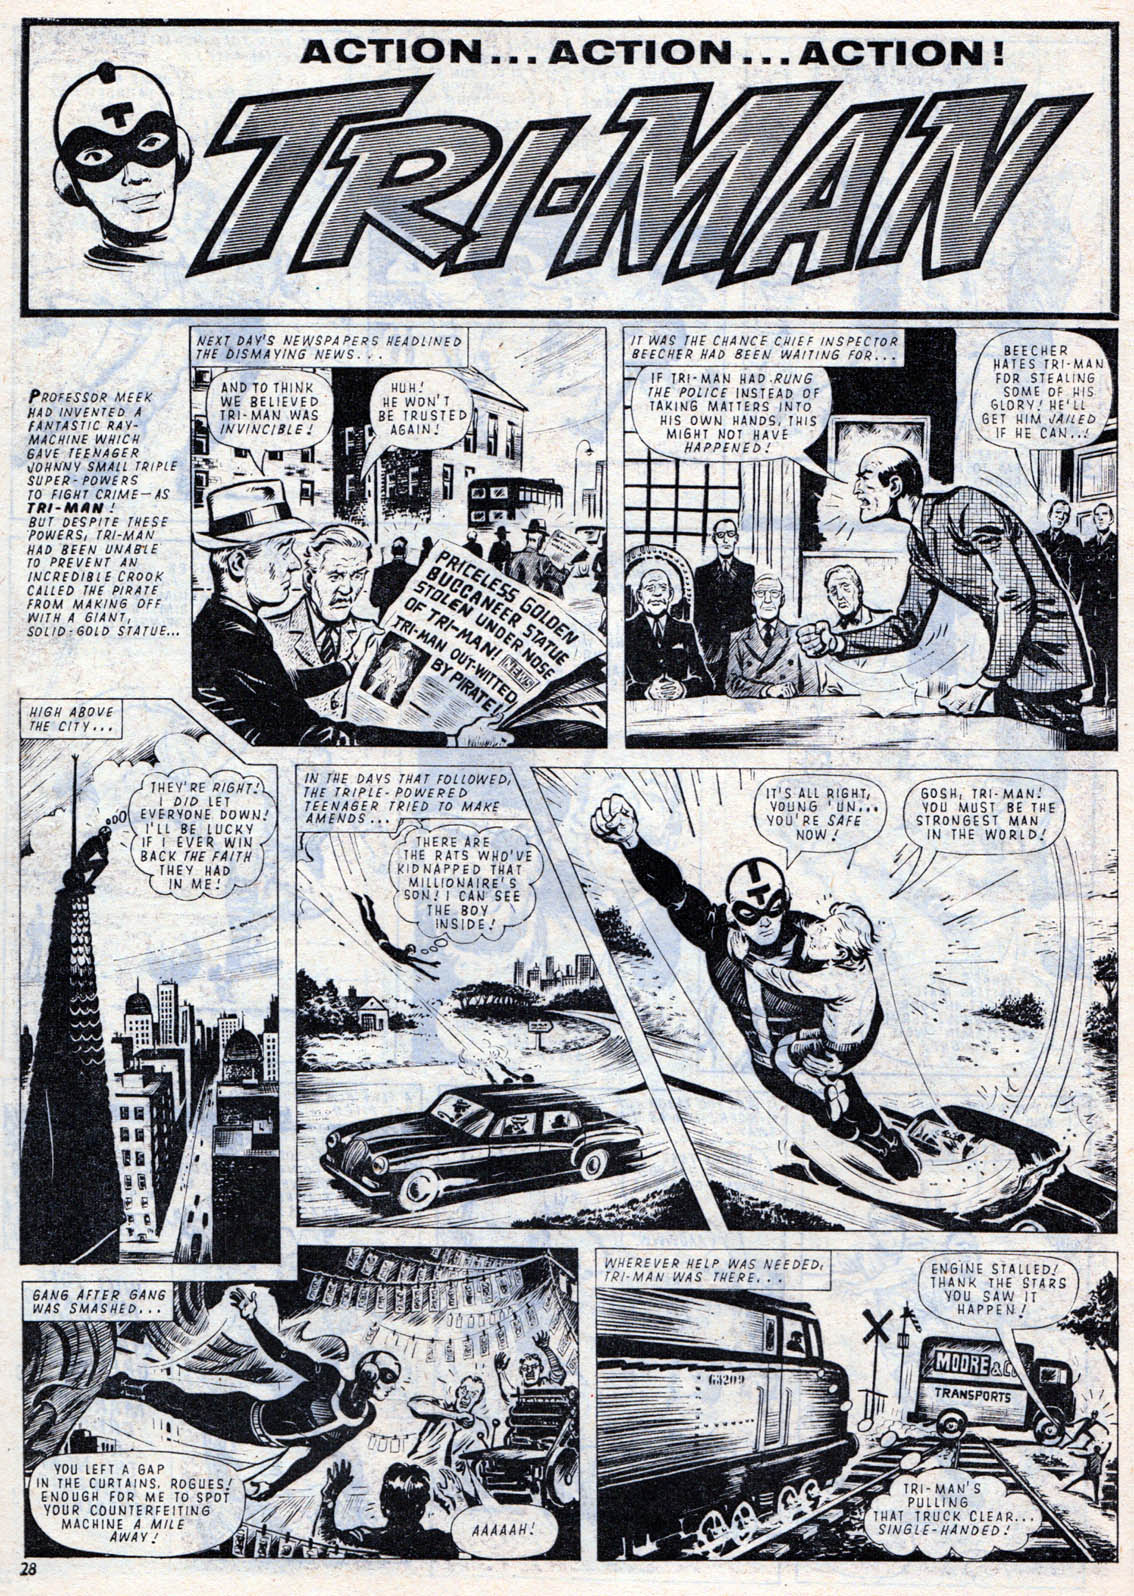 BLIMEY! The Blog of British Comics: The Christmas SMASH! (1969)